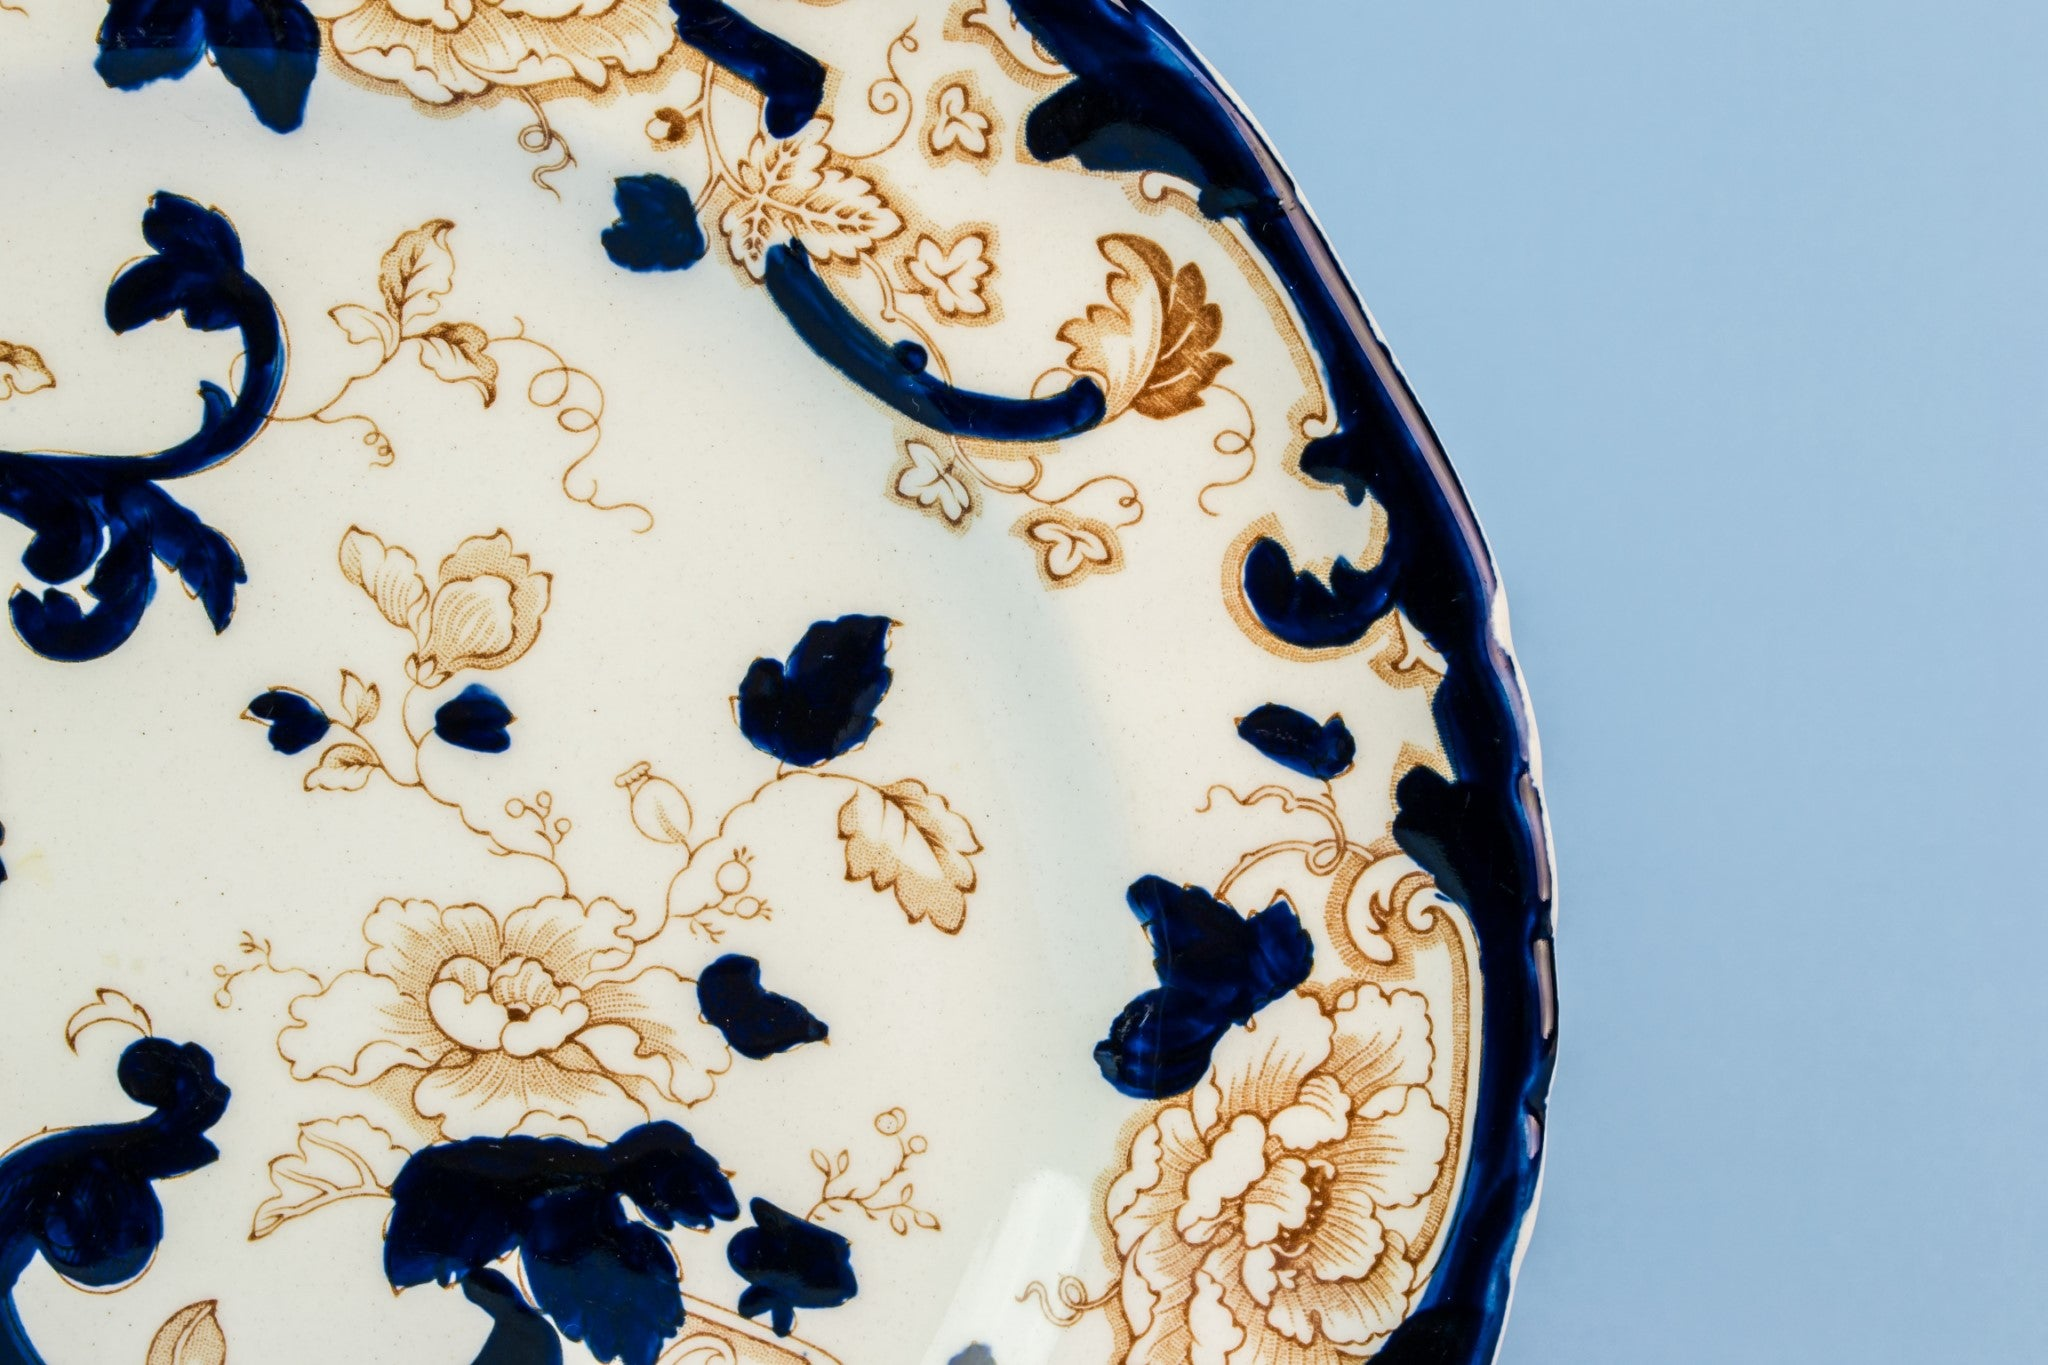 Blue and white cake plate